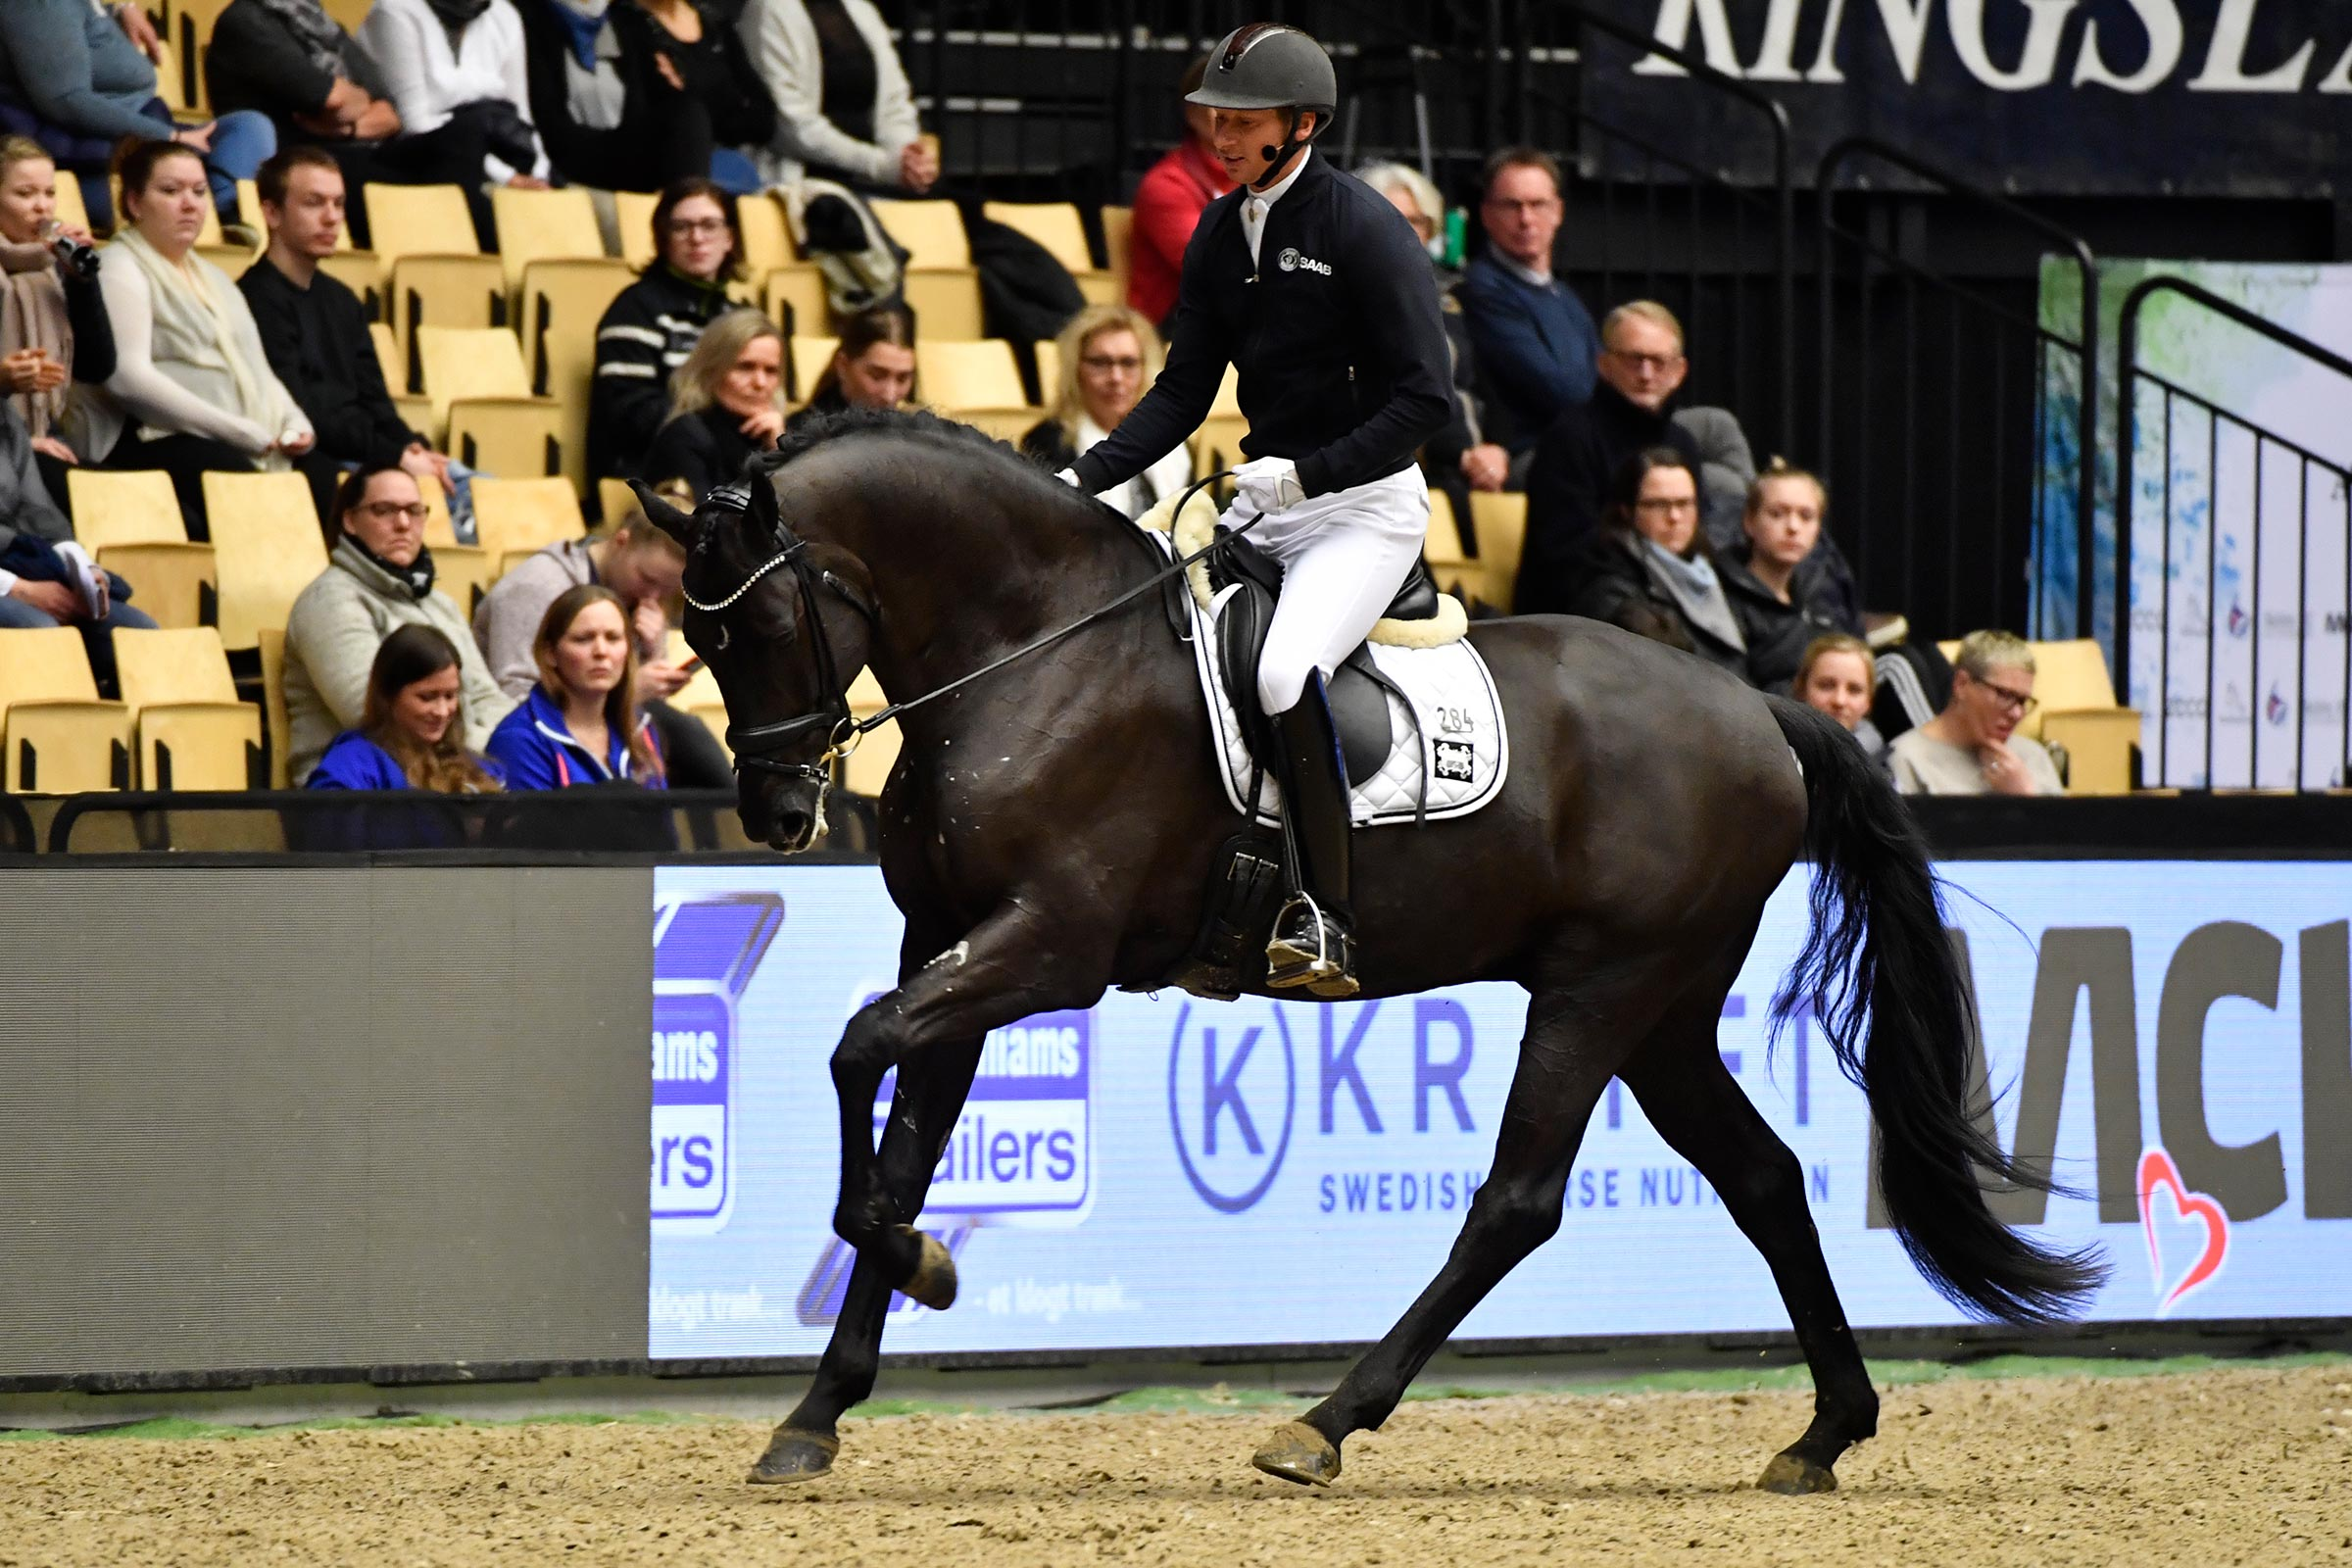 International dressage rider, Swedish Patrik Kittel was a very popular firs-time test rider in Herning last year.International dressage rider, Swedish Patrik Kittel was a very popular firs-time test rider in Herning last year.